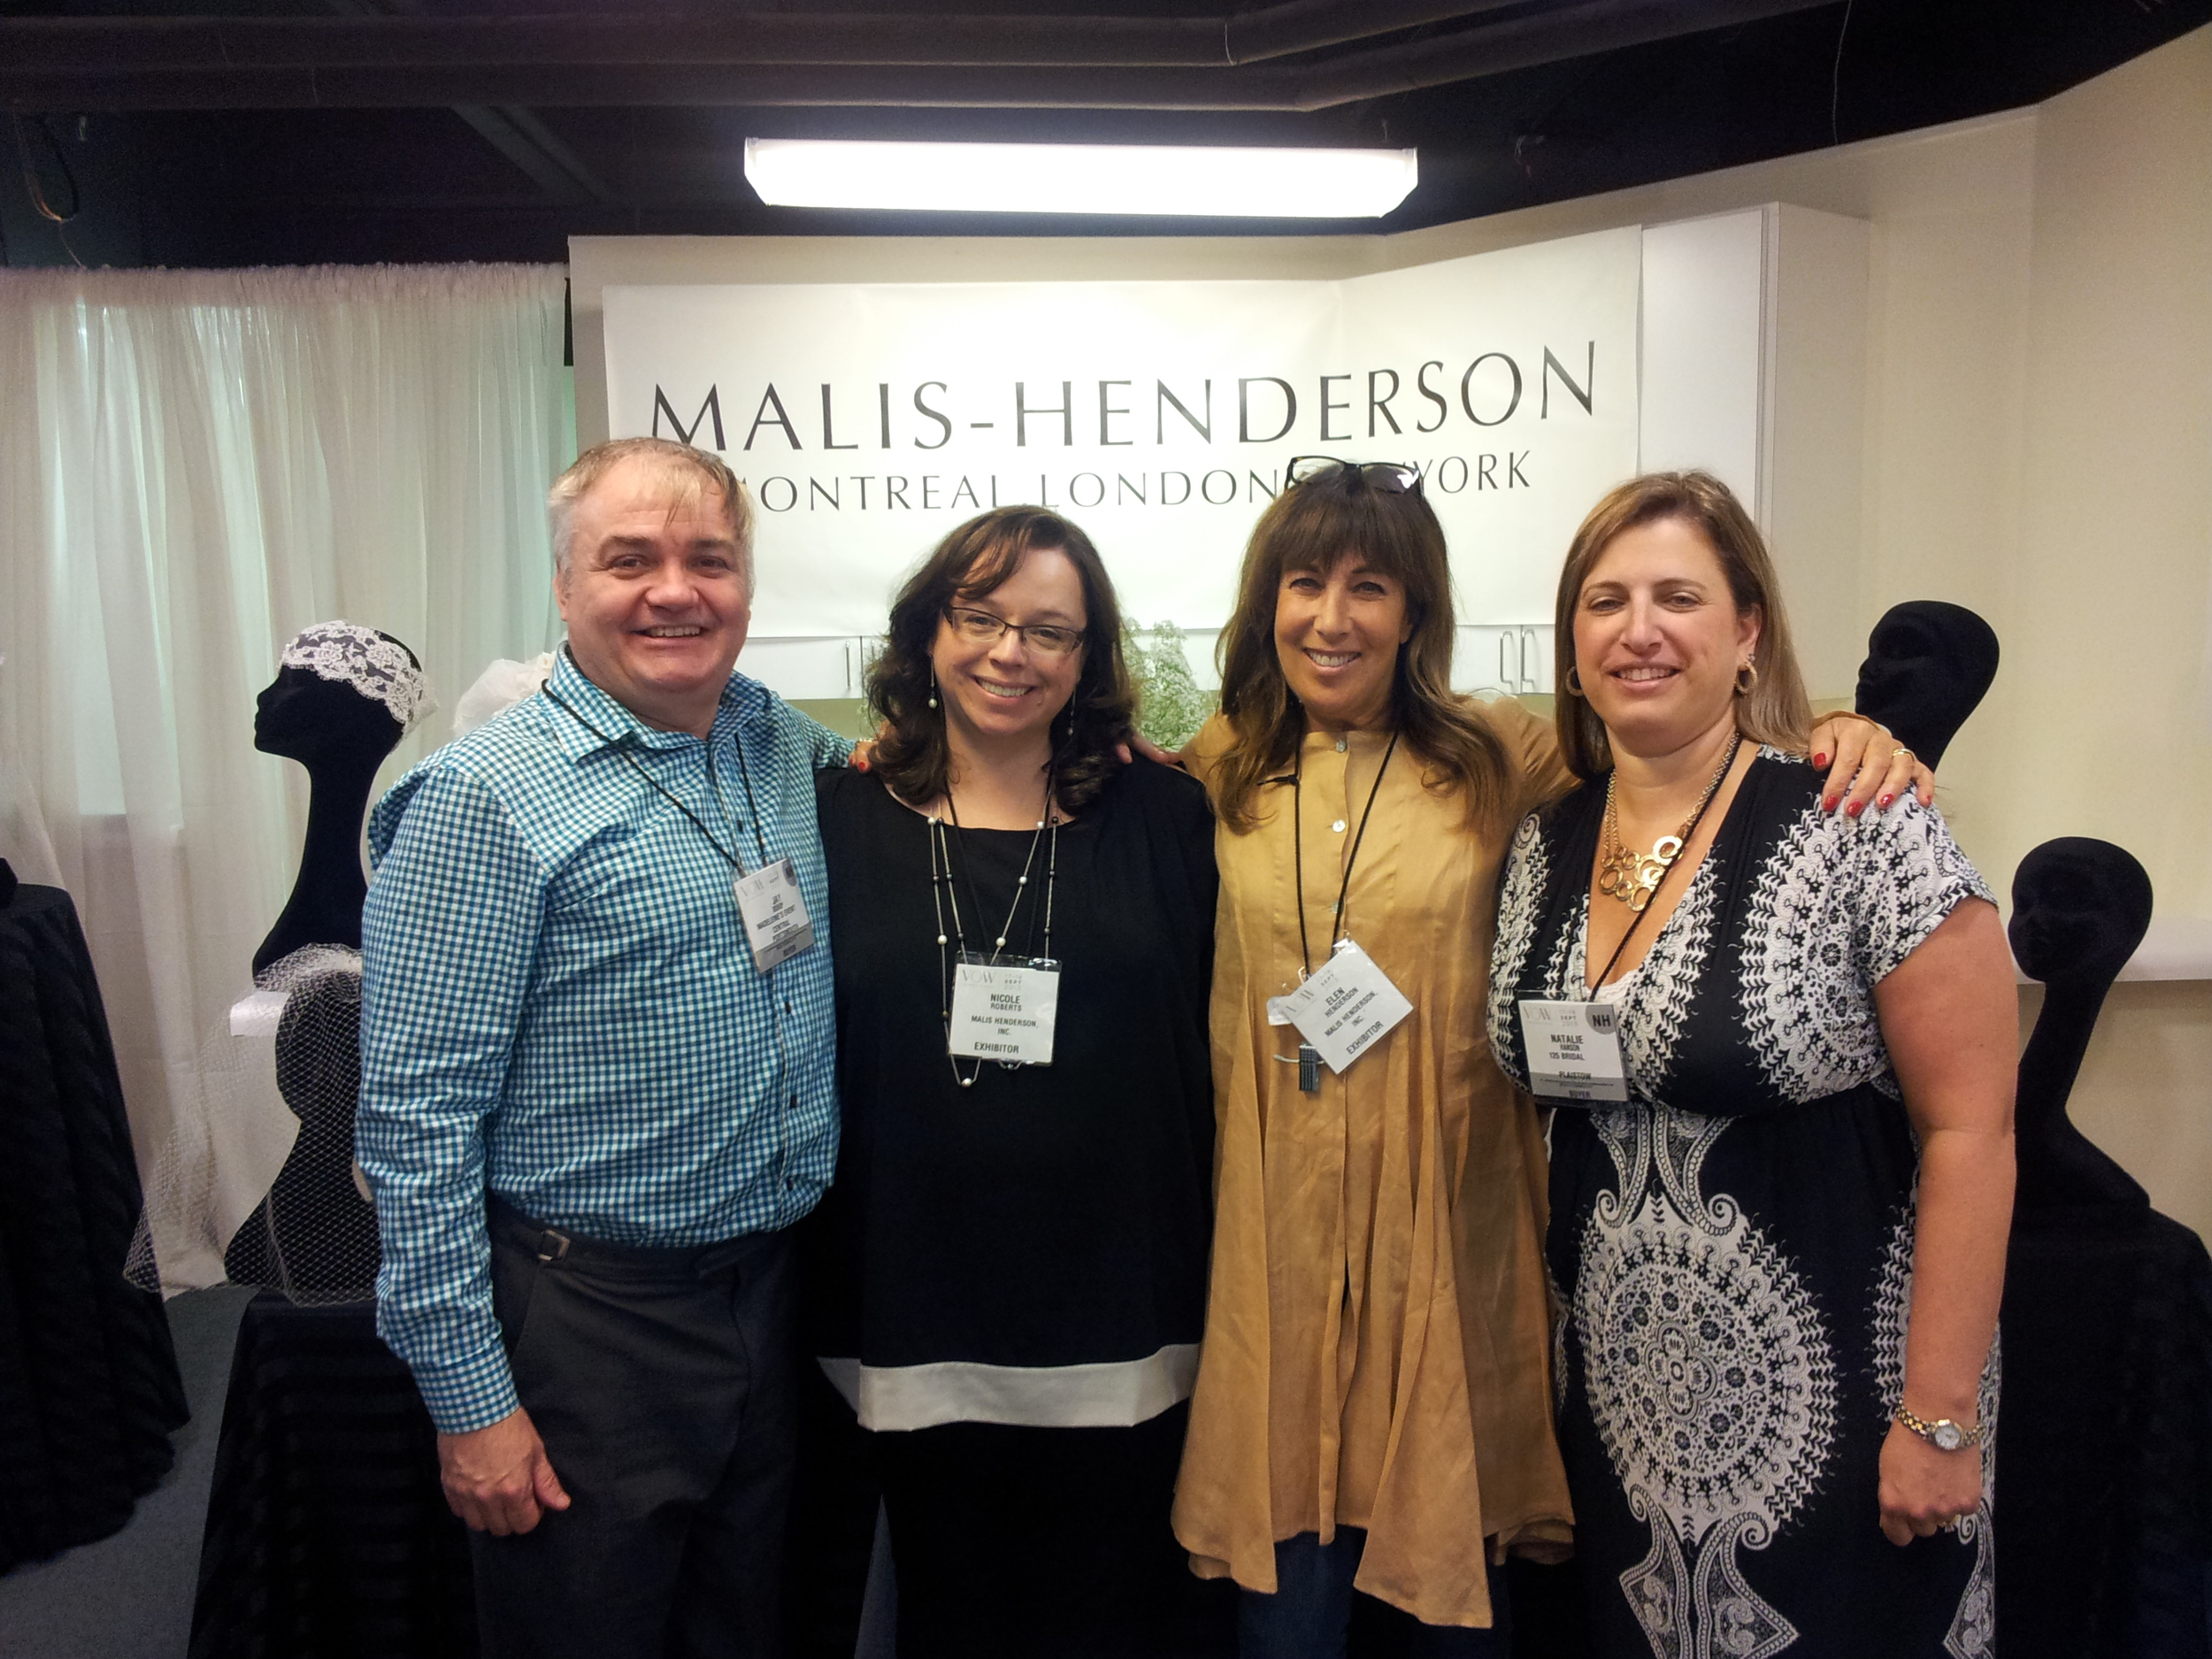 Elen & Nicole (center) with Jay & Natalie from 125 Bridal in Plaistow, NH